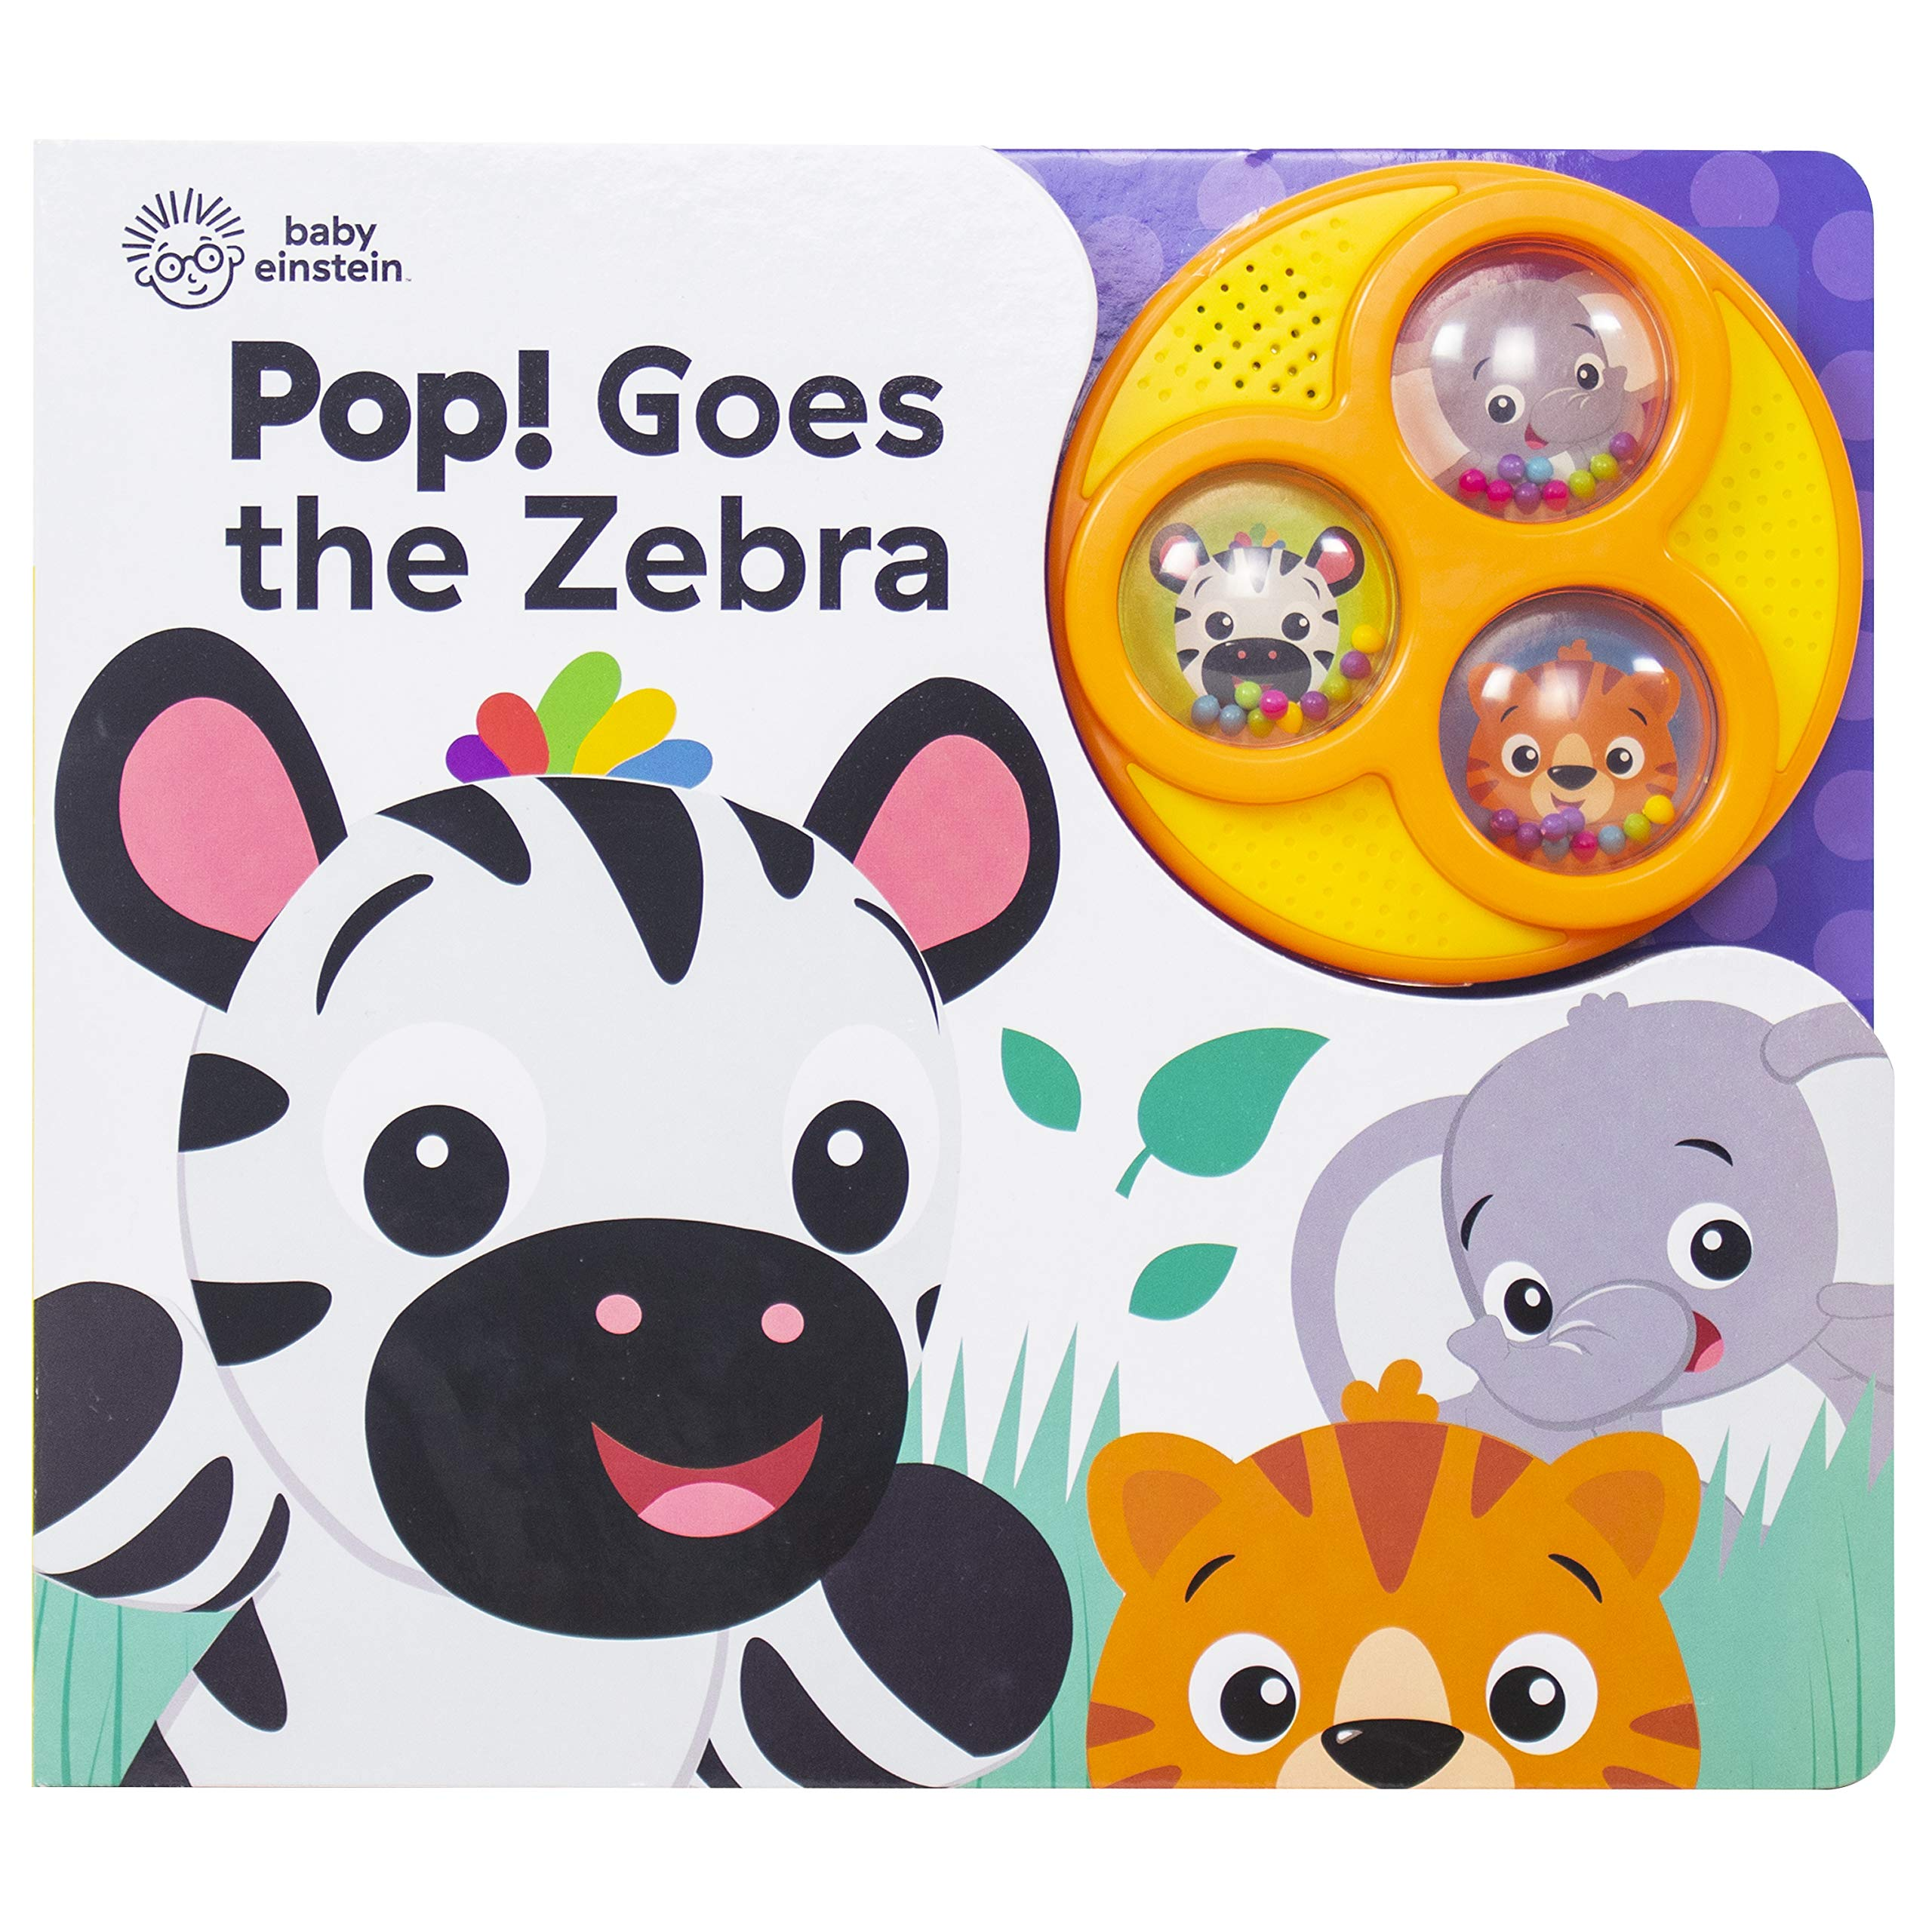 Baby Einstein - Pop! Goes the Zebra - Popping Button Sound Book - PI